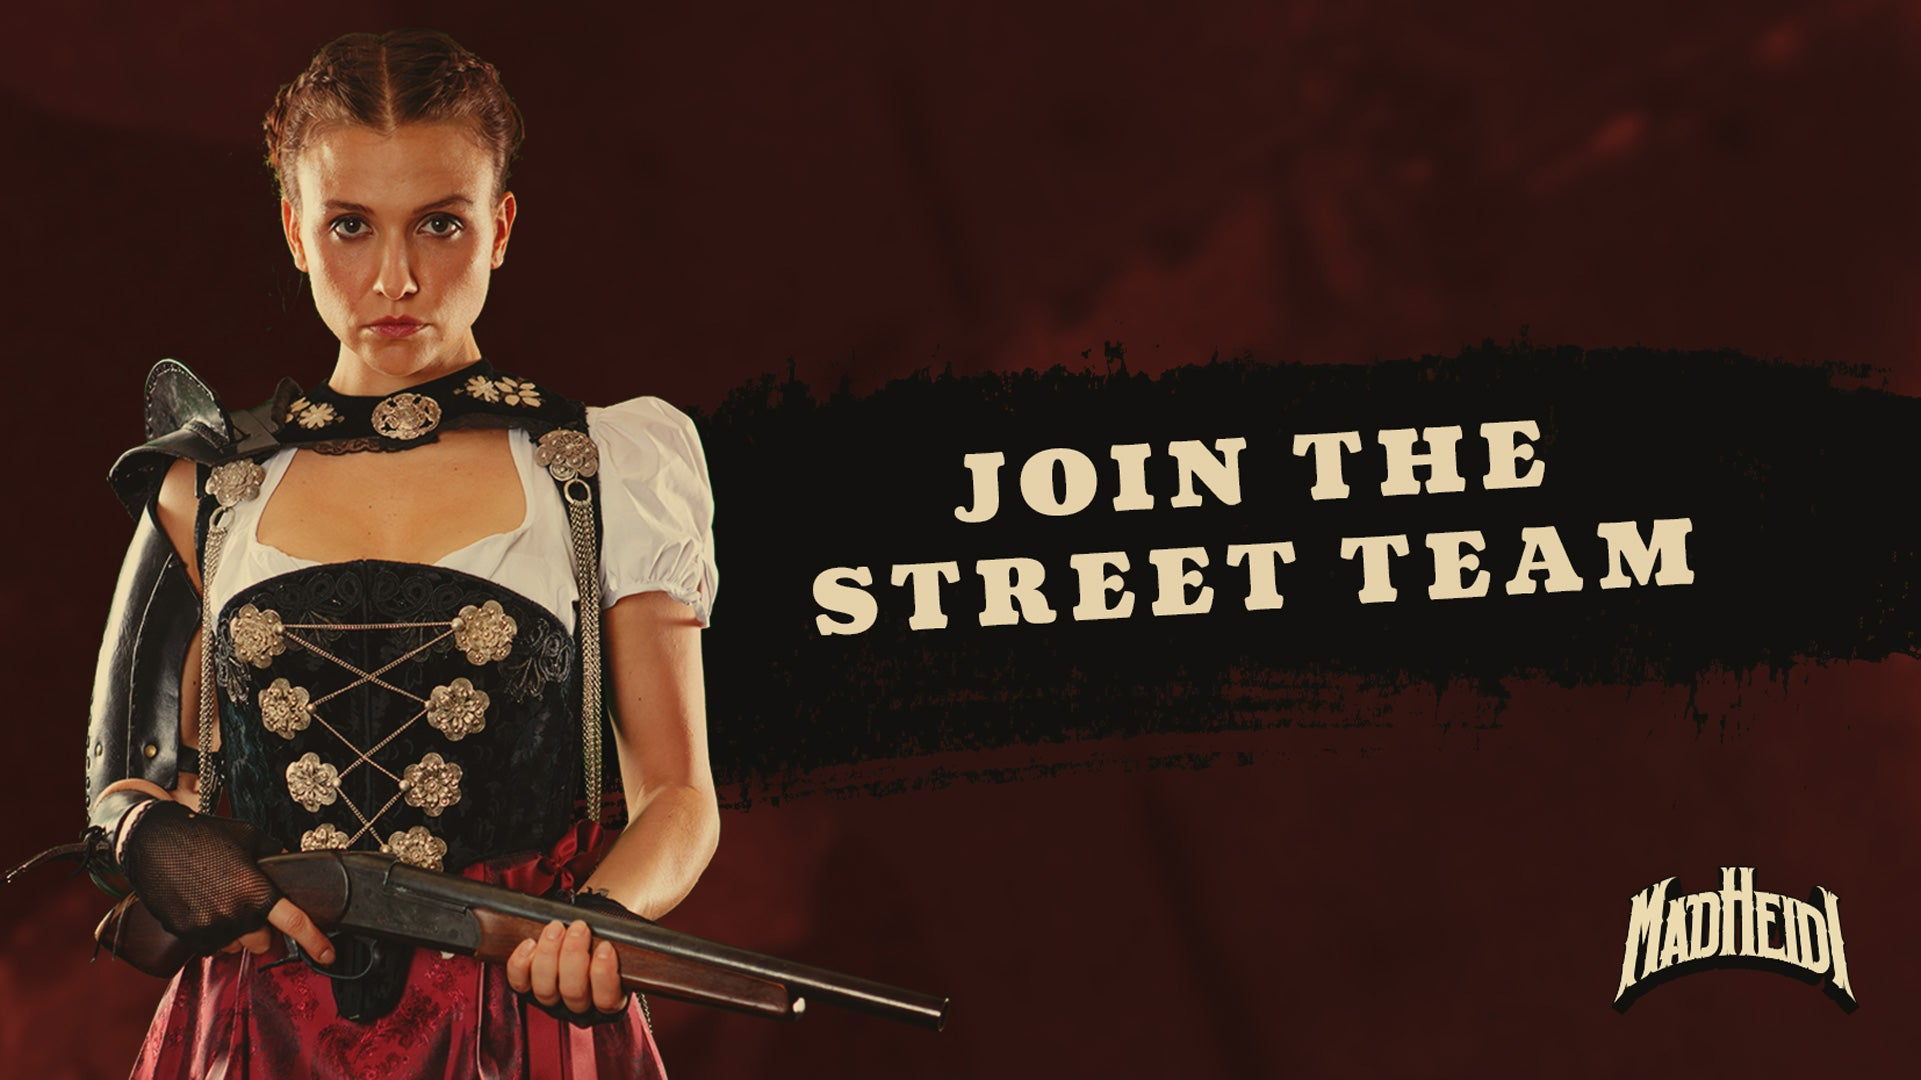 Join the Street Team and make money!